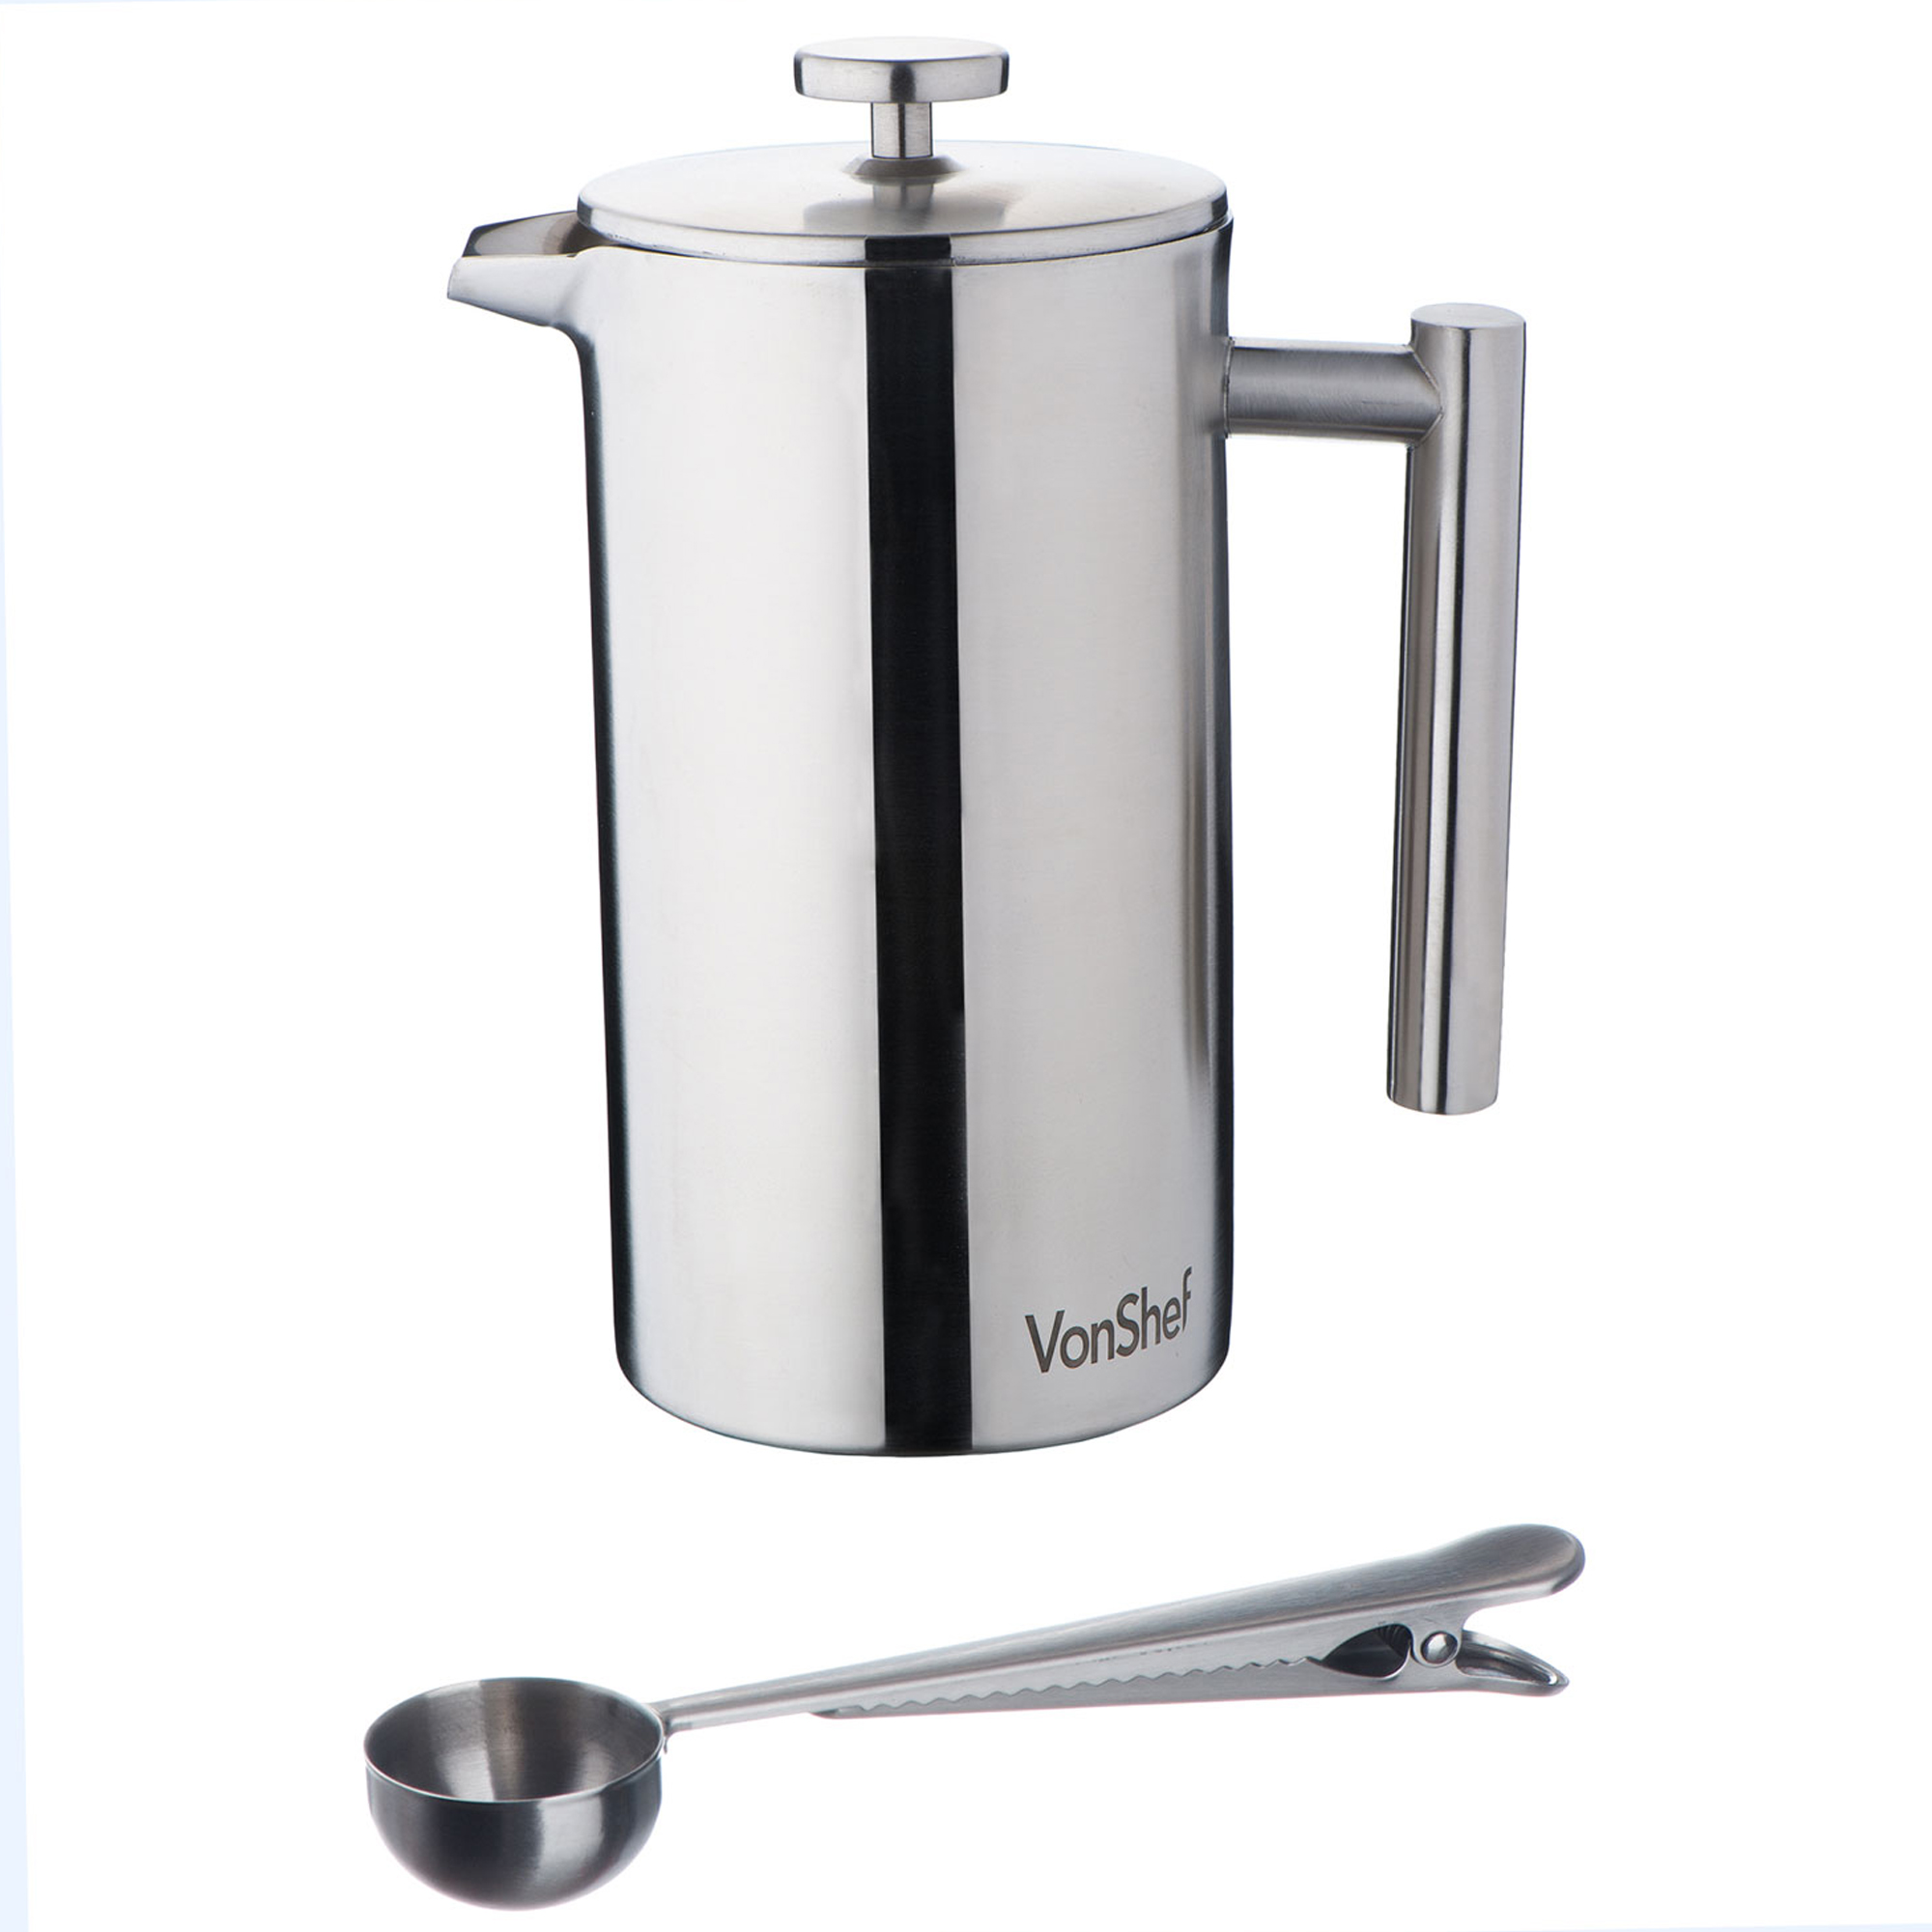 vonshef stainless steel cafetiere coffee filter maker measuring spoon clip ebay. Black Bedroom Furniture Sets. Home Design Ideas